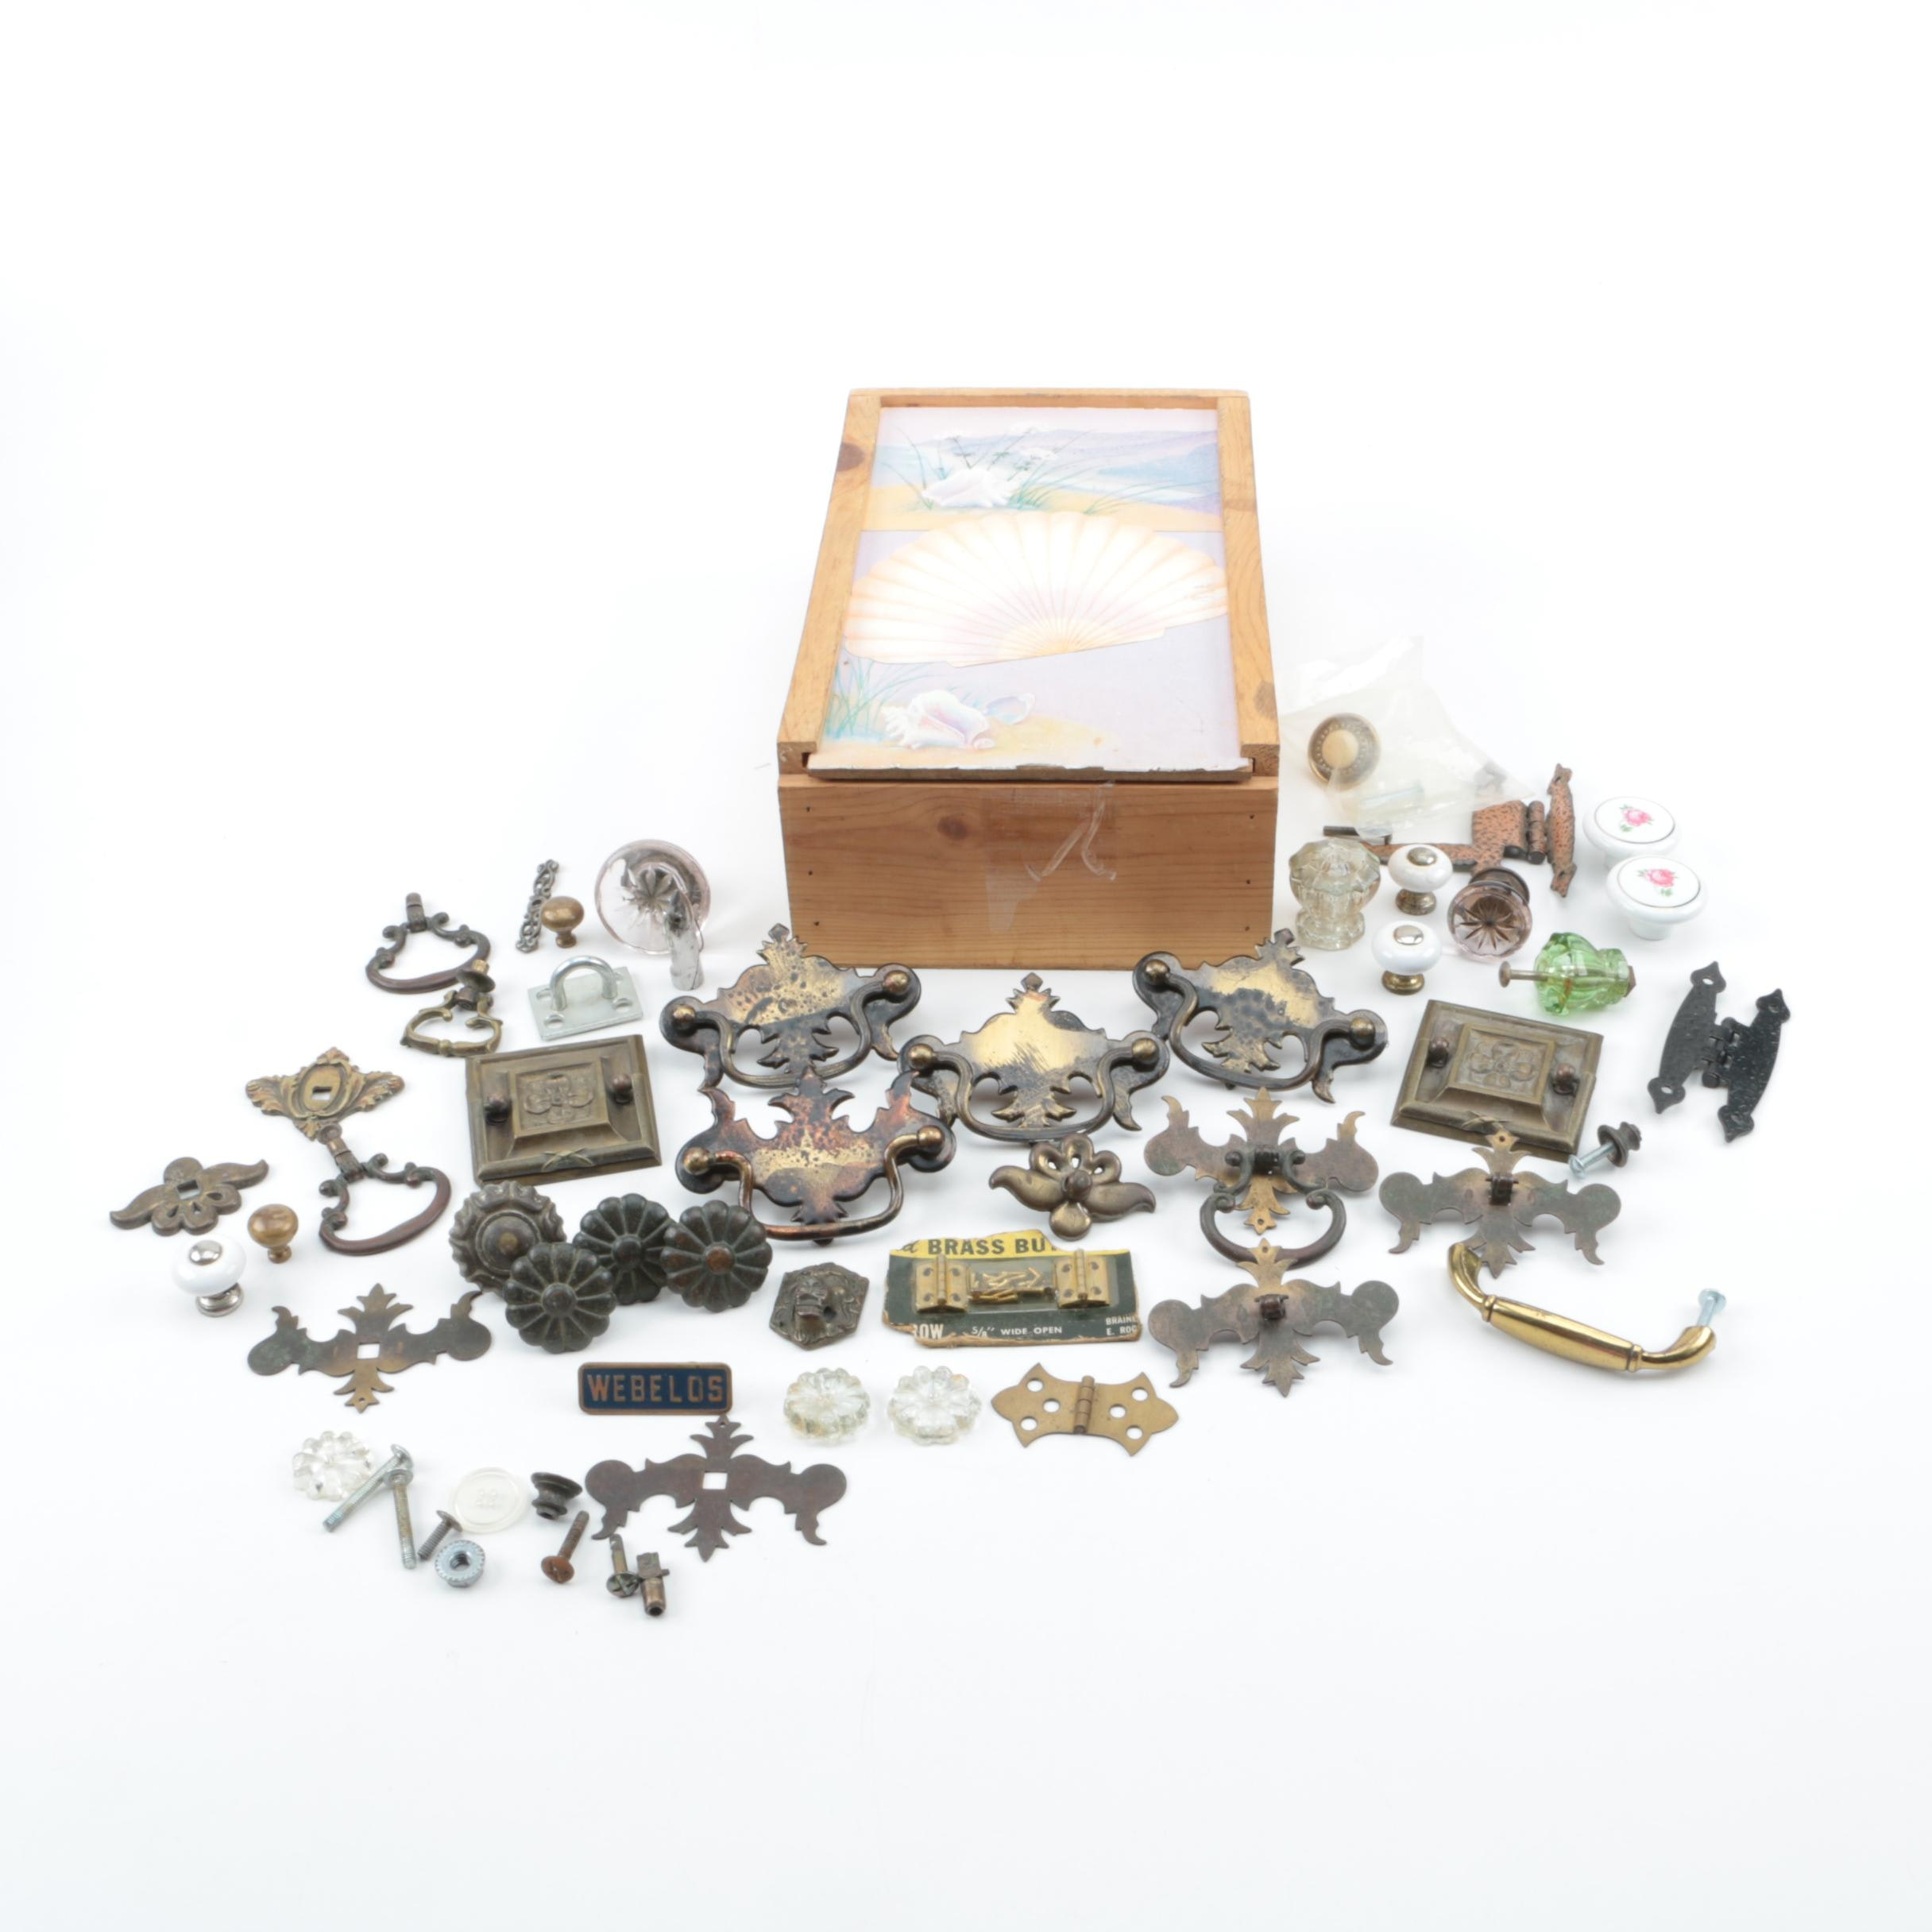 Wooden Box of Drawer Pulls, Knobs and Decorative Hardware